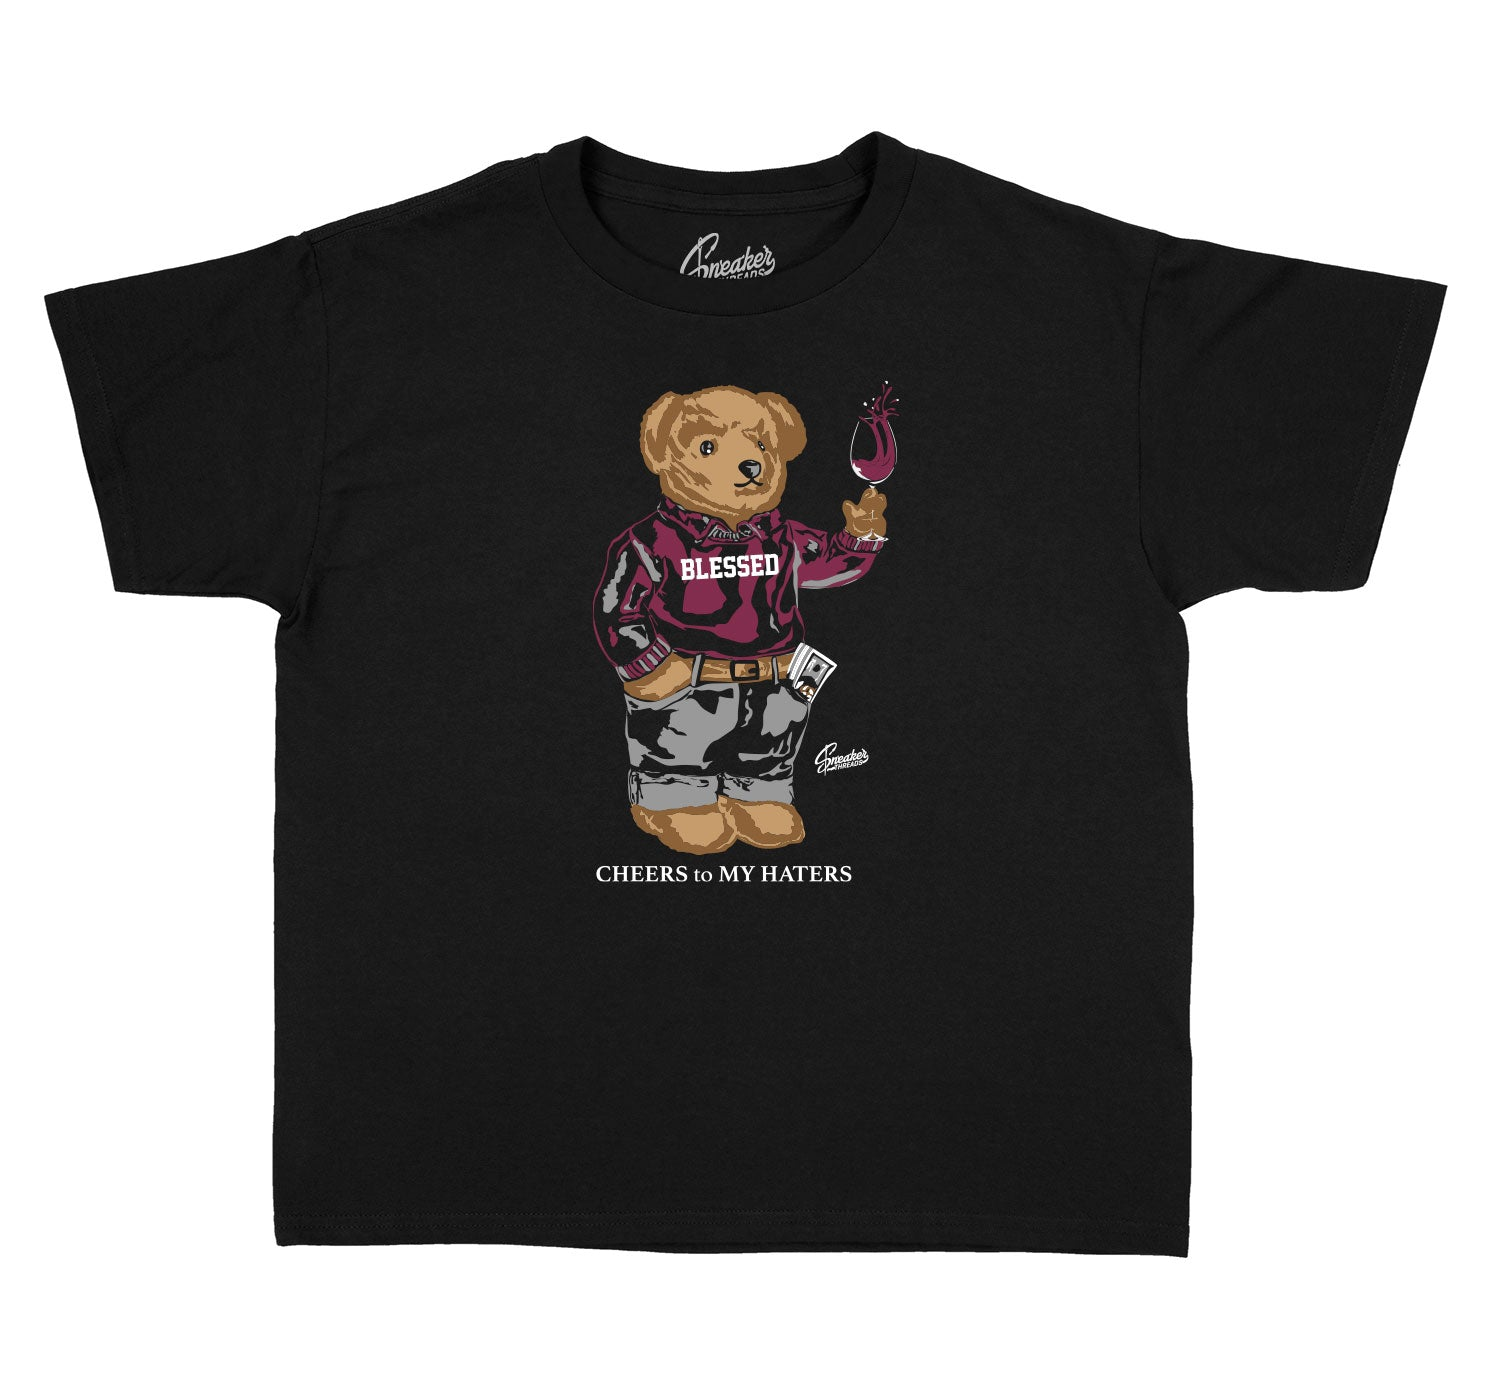 Jordan 8 Burgundy sneaker collection matches with kids shirts